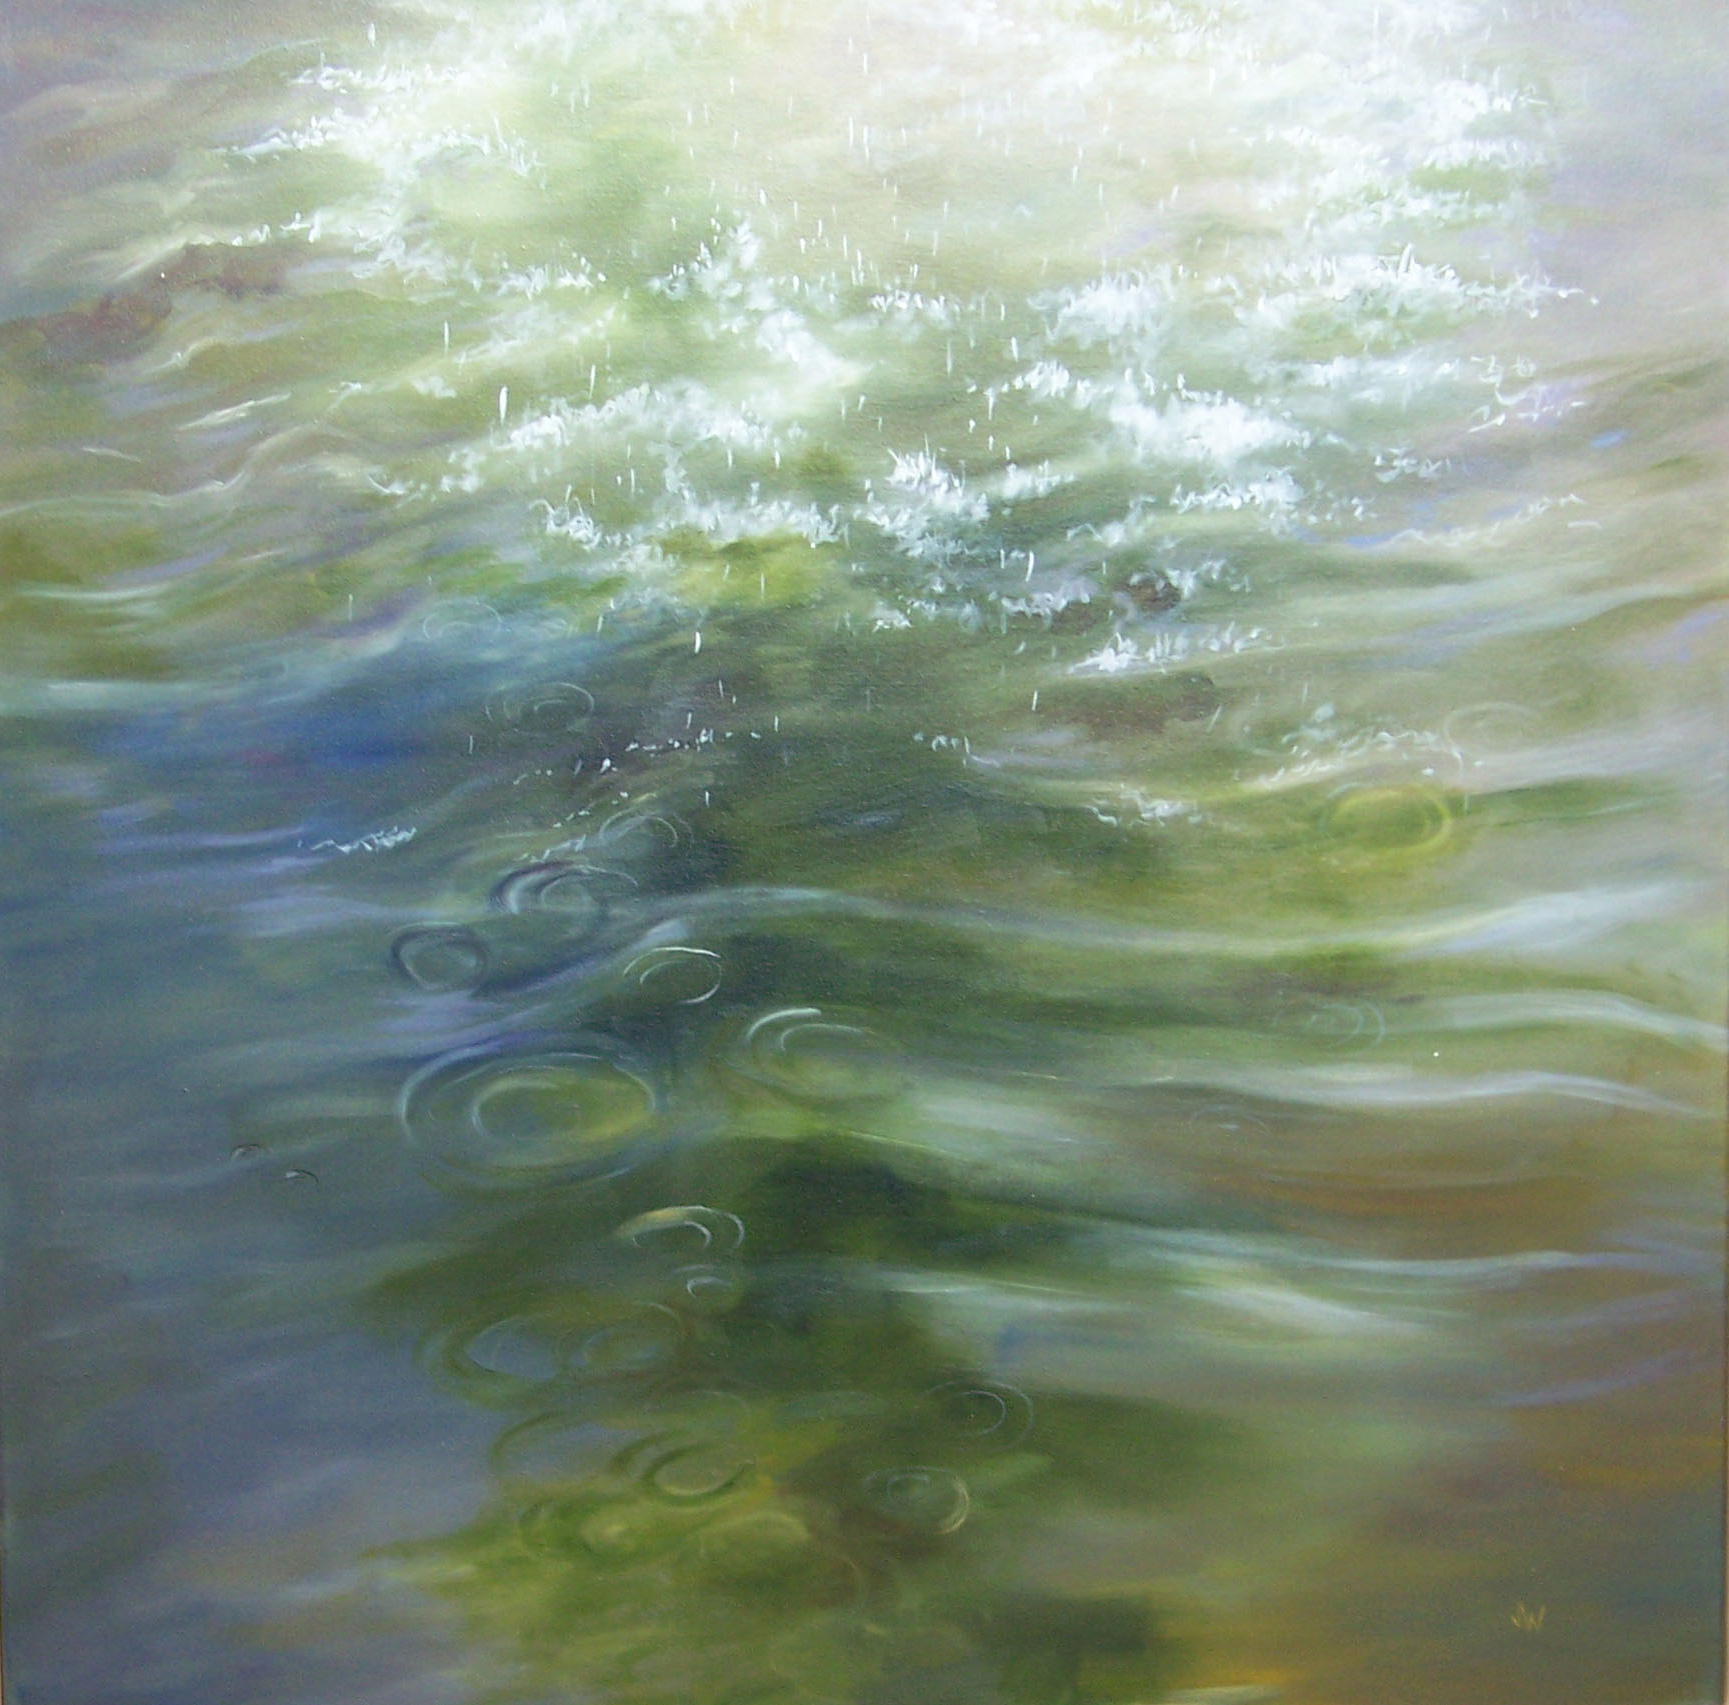 Secret-Fountain-36x36.jpg